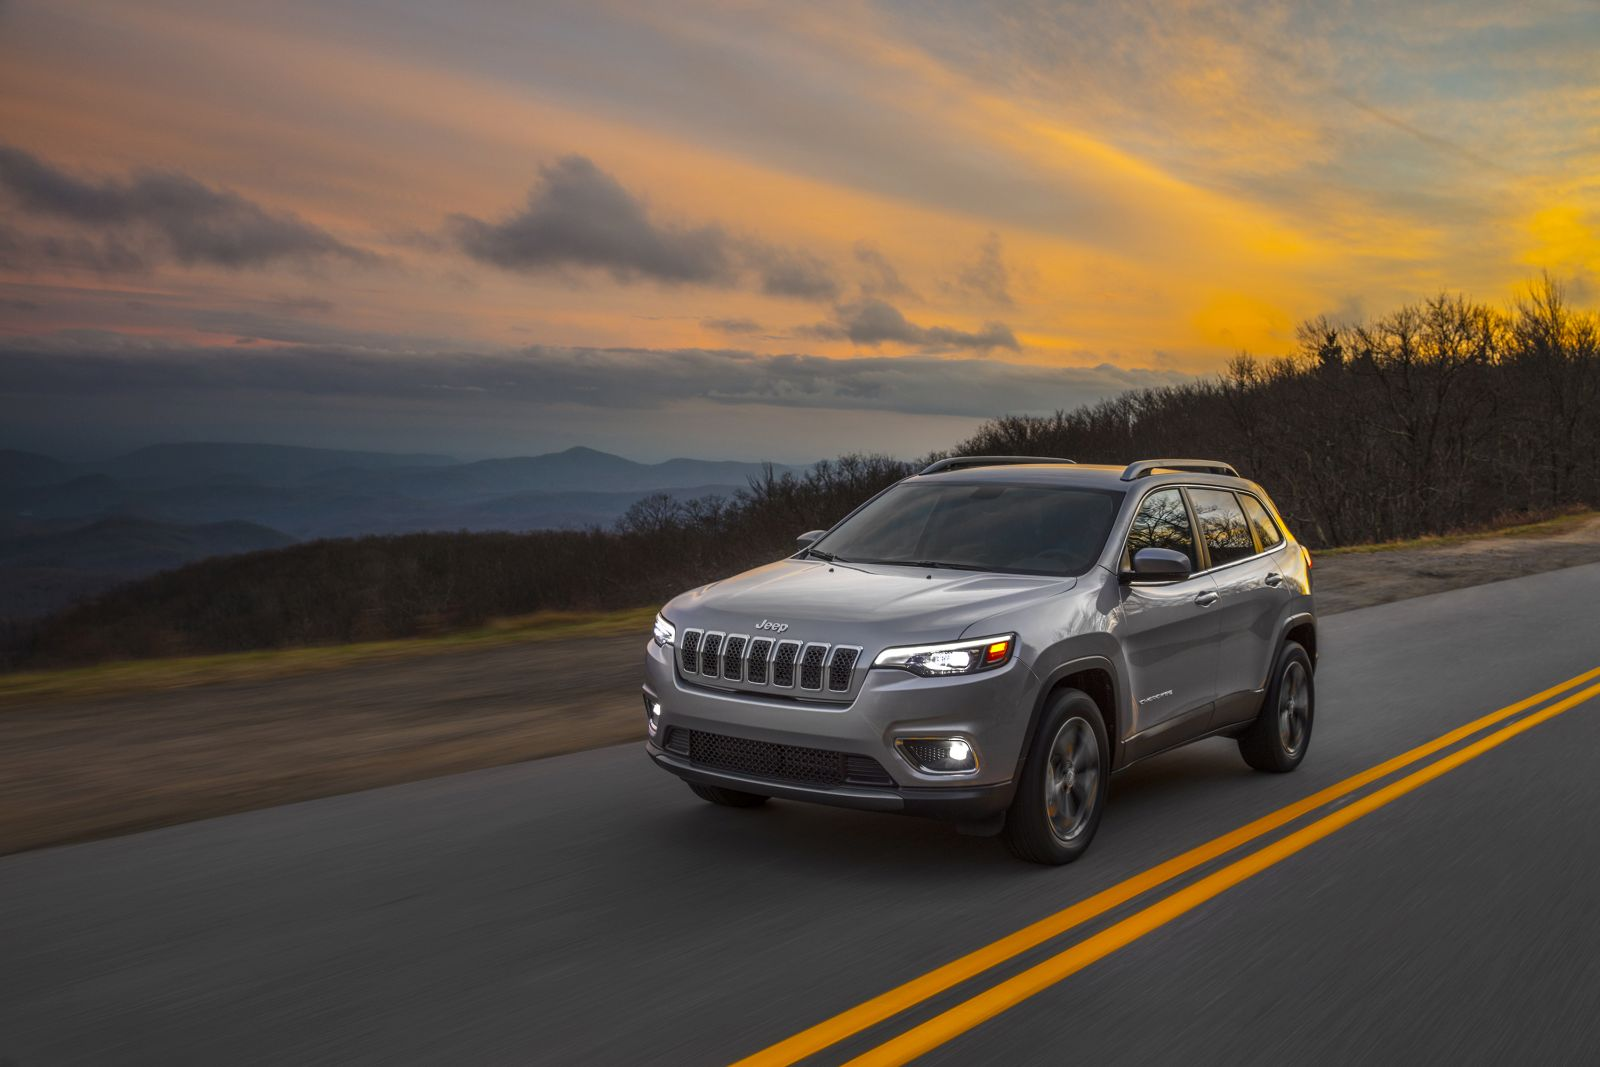 new 2019 jeep cherokee debuts at the 2018 detroit auto. Black Bedroom Furniture Sets. Home Design Ideas